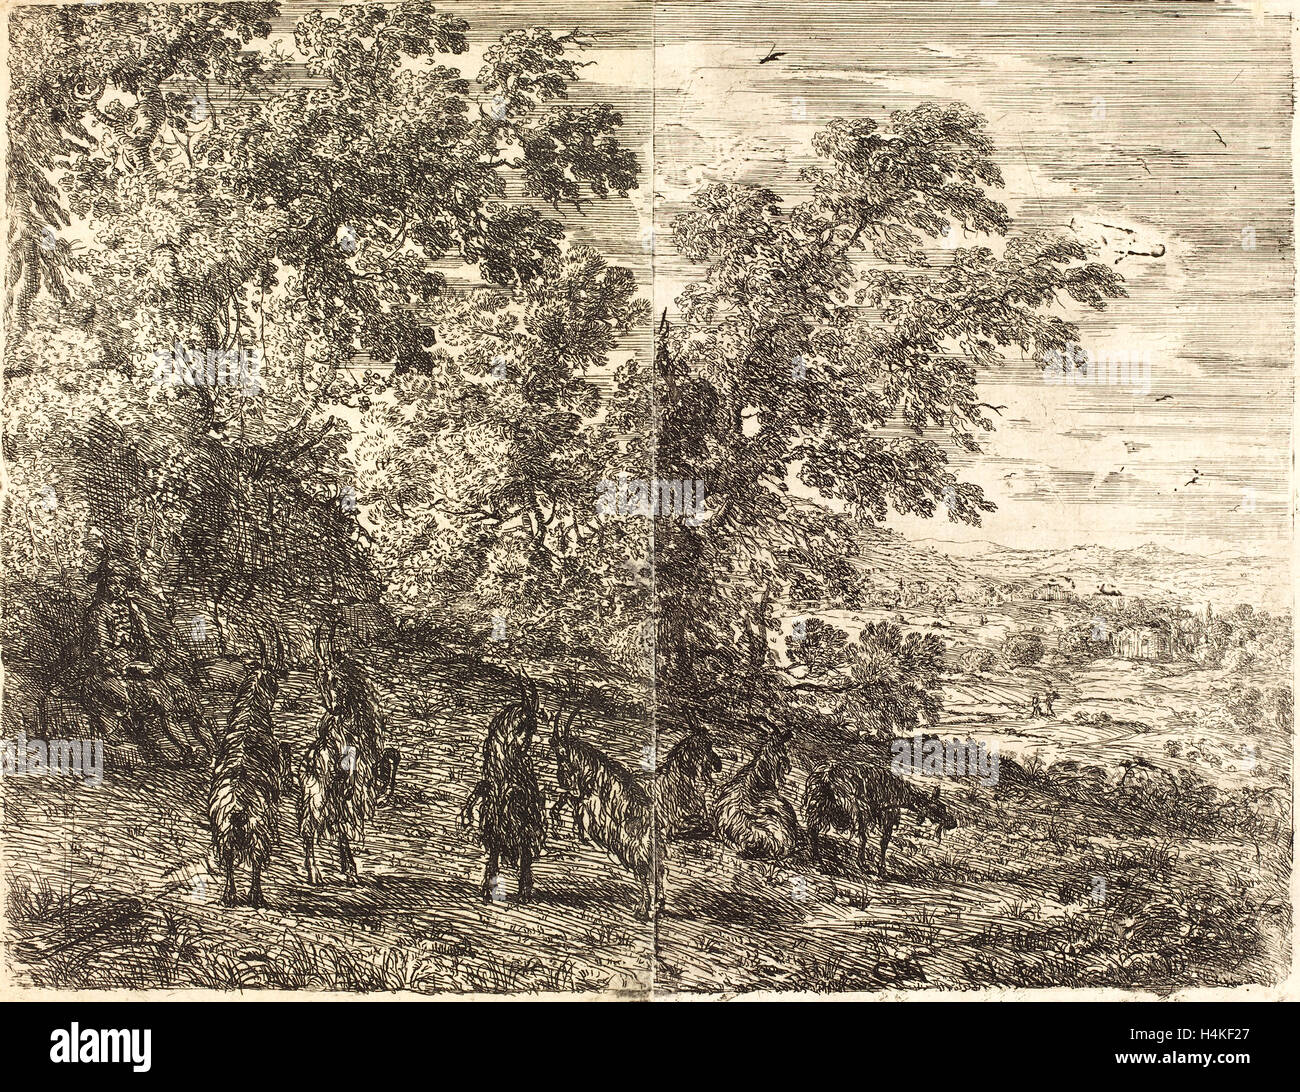 Claude Lorrain, French (1604-1605-1682), Shepherd with Goats (Les chèvres), c. 1630-1633, etching - Stock Image